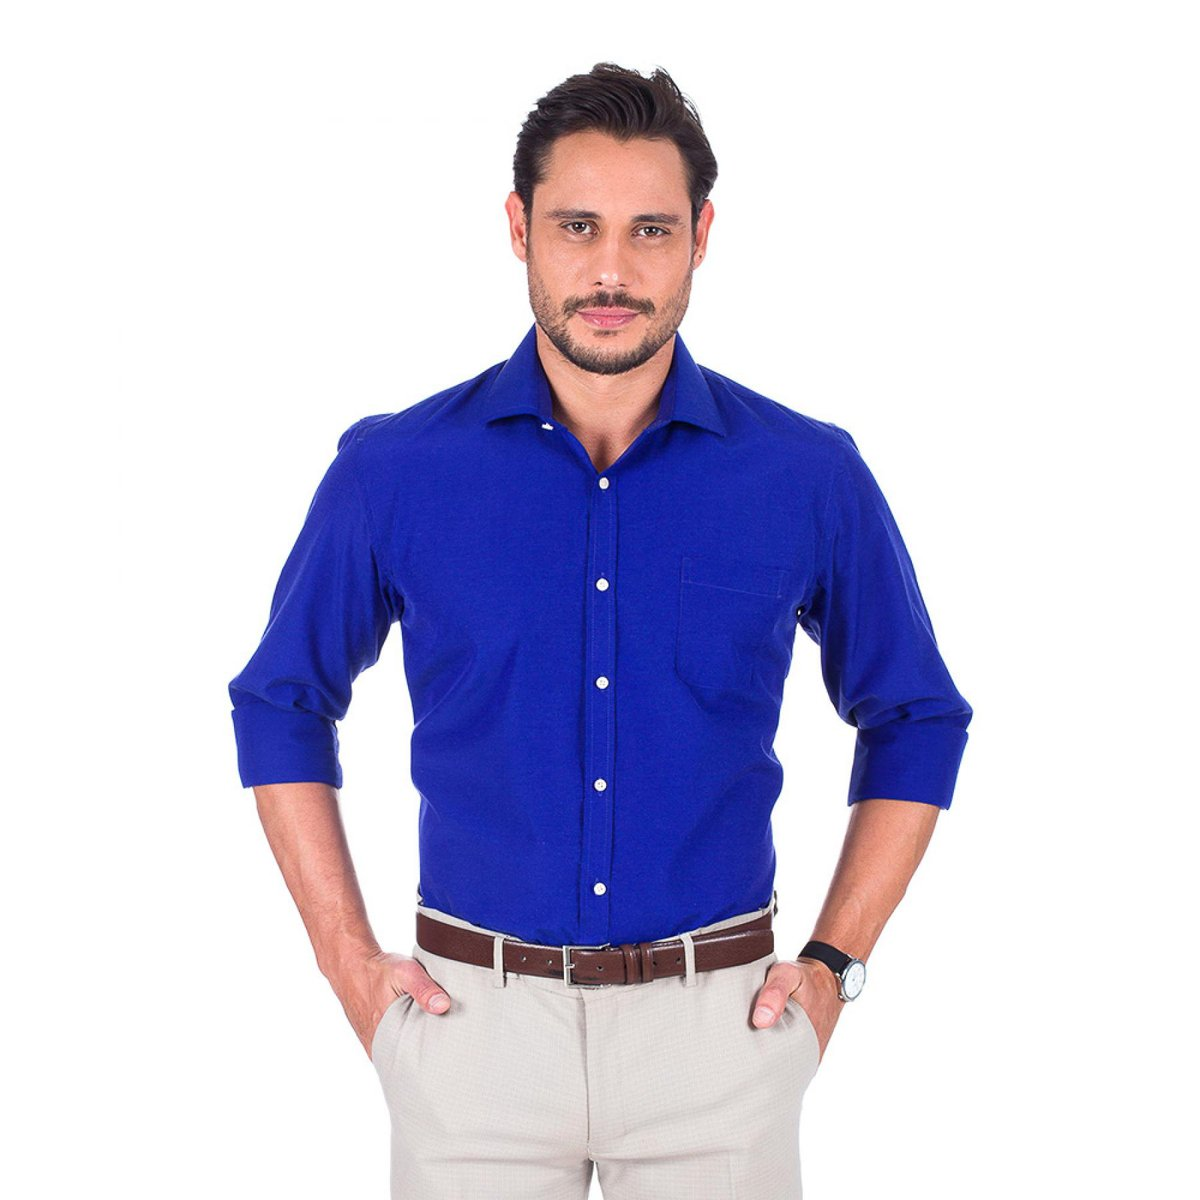 7dd11dce91 Camisa Social Colombo Masculino